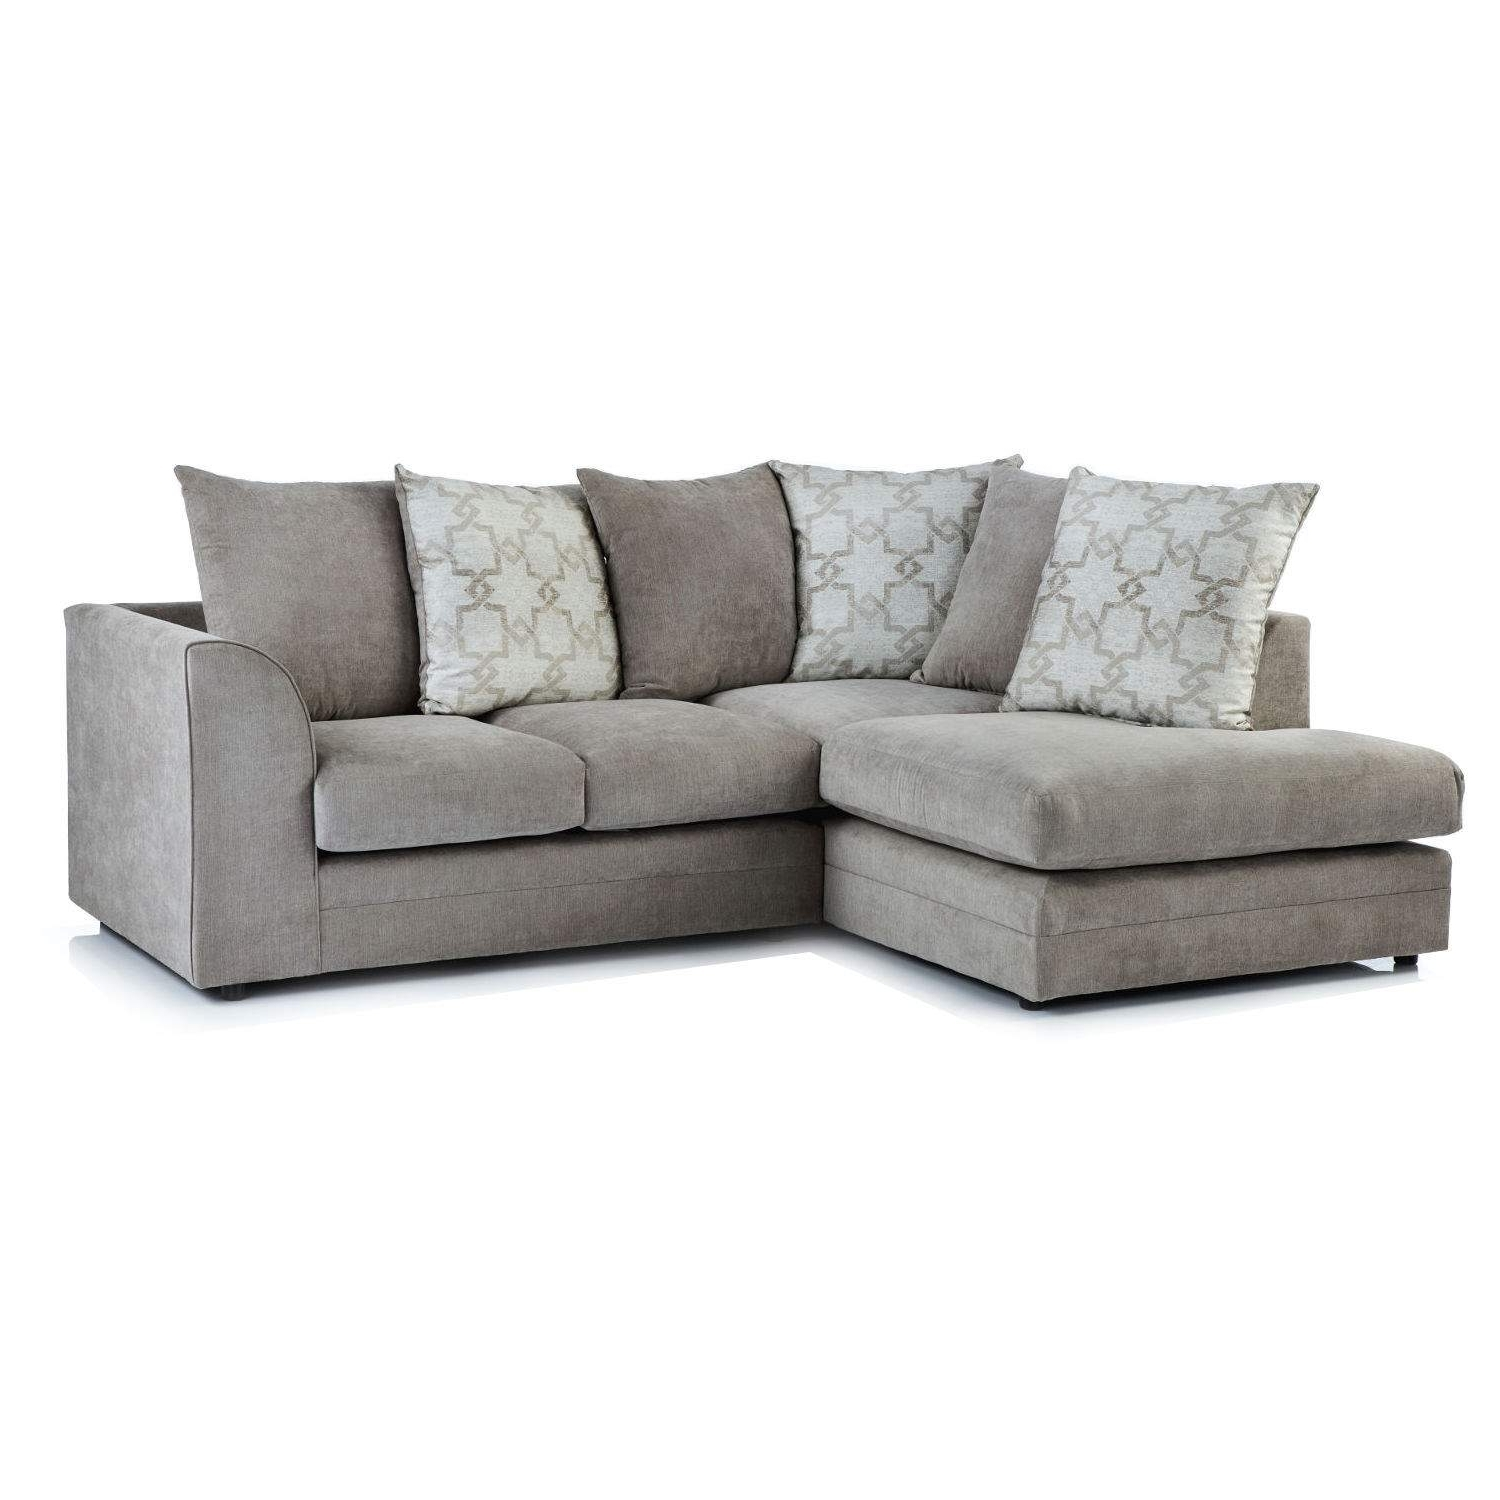 Washington Fabric Corner Chaise Sofa – Next Day Delivery Within Favorite Fabric Corner Sofas (View 17 of 20)